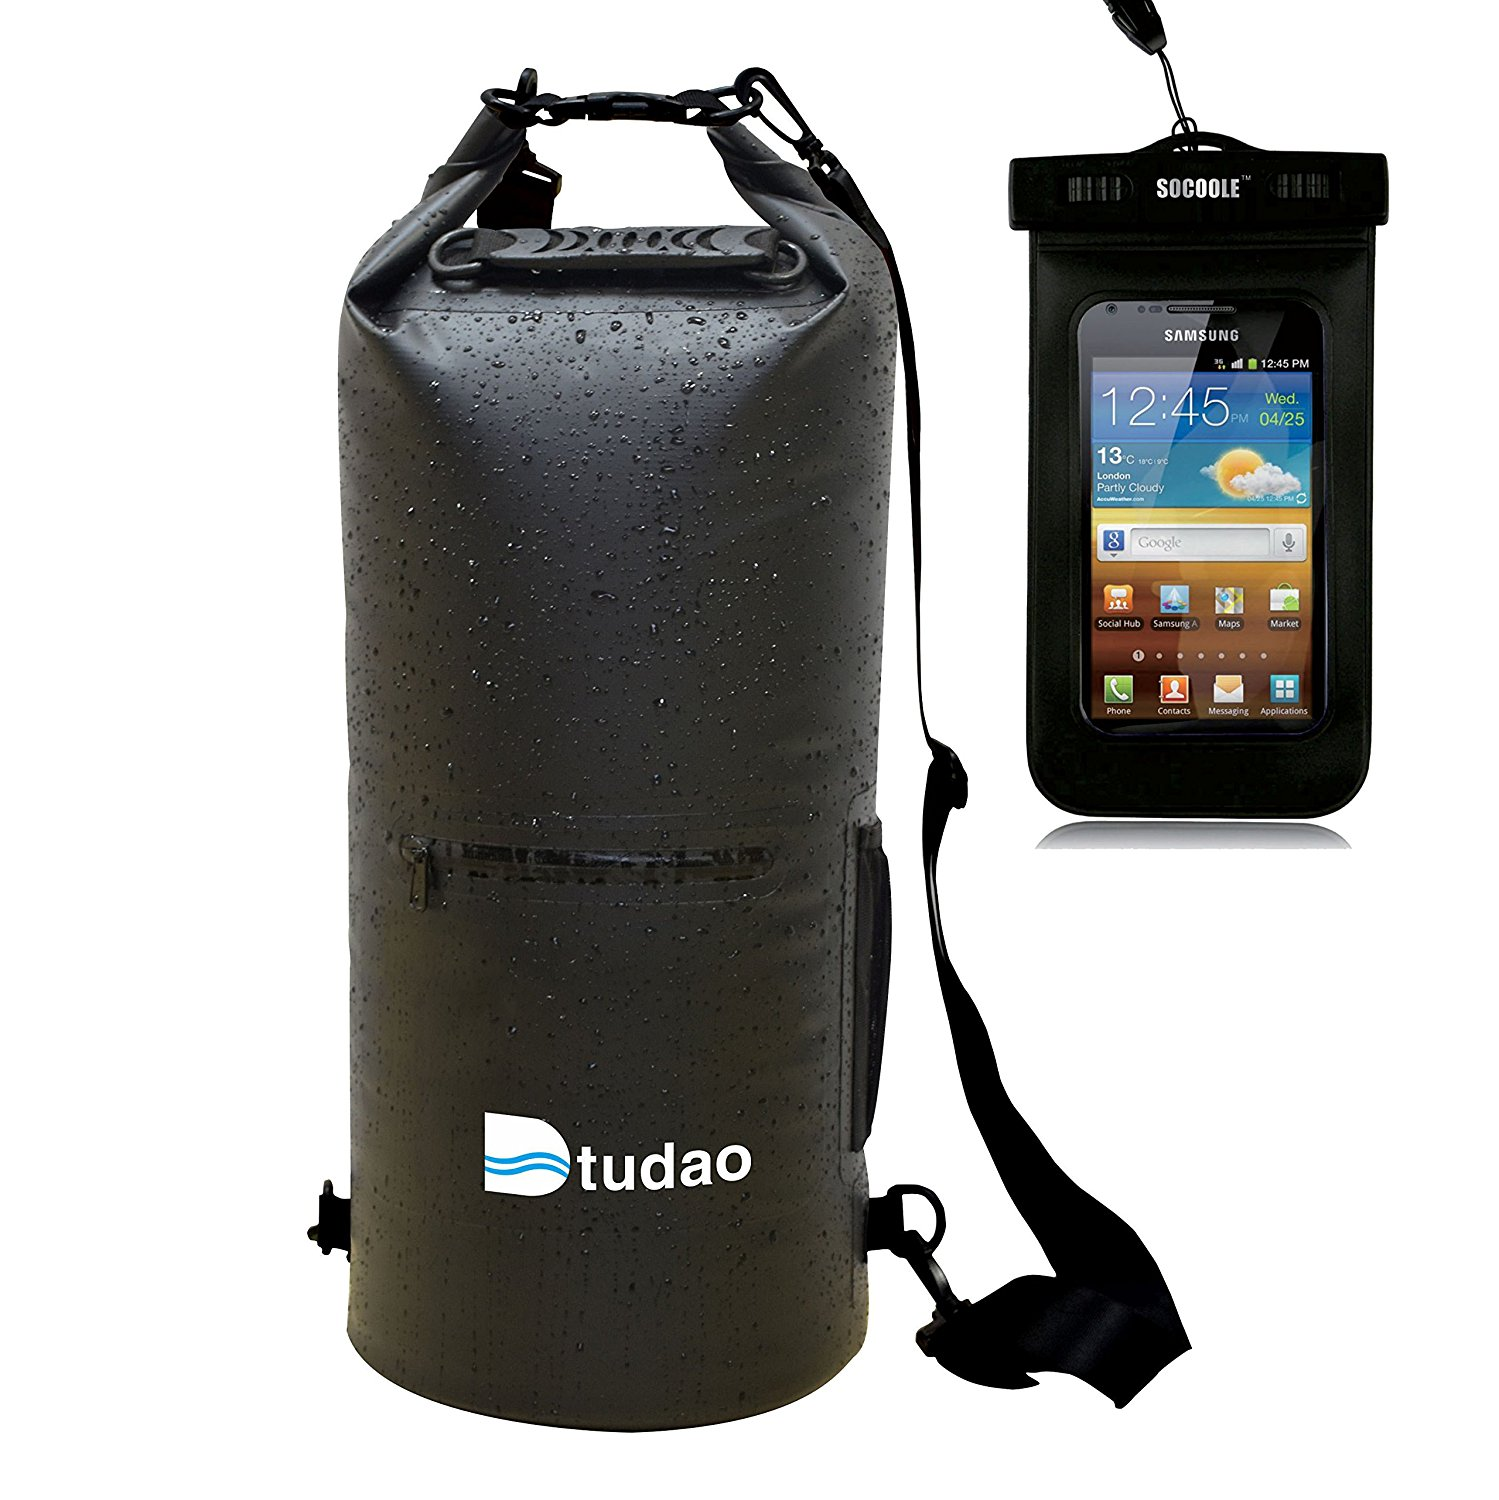 100% Waterproof 10L/20L/30L Multipurpose Waterproof Dry Bag Roll Up Dry Sack With Both Shoulder Straps, Phone Pocket & Bottle Holder As Waterproof Backpack,Perfect for Cano Kayaking Swim Beach Hiking Boat Sailing Camping Fishing Snowboarding, Free 6 inch Waterproof Bag Included.